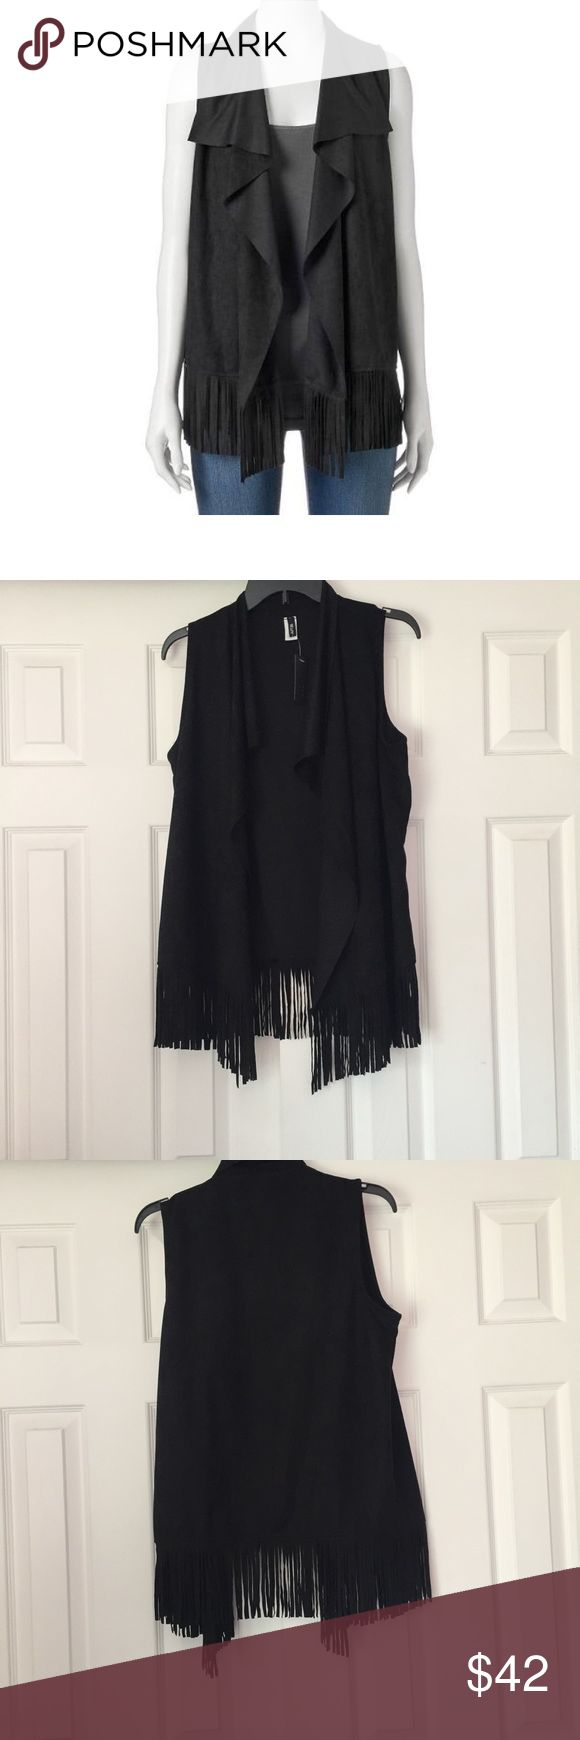 Apt. 9 Fringe Vest Apt 9. Fringe Vest in black. One size fits most. Faux suede fabric, 100% polyester. Long fringe accents around the bottom. New with tags, never worn! [B91] Apt. 9 Tops